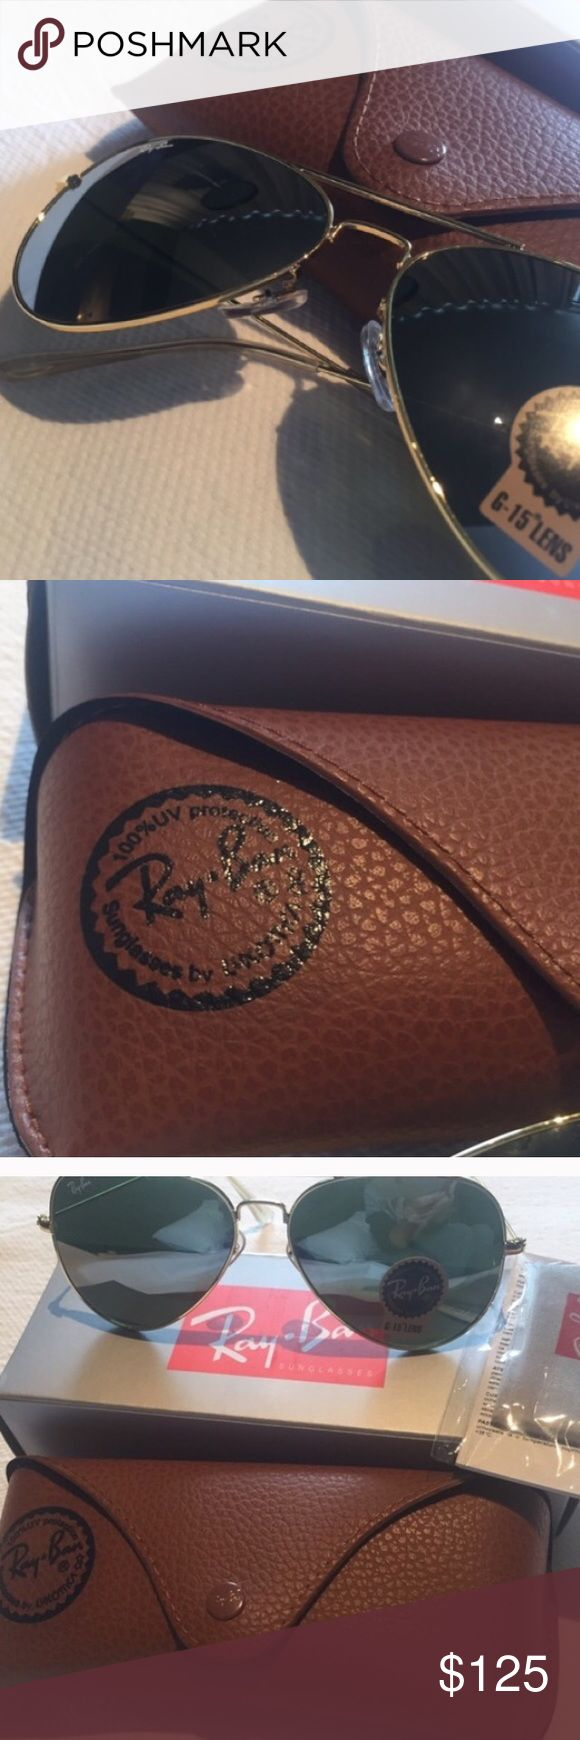 Ray ban New Accessories Glasses